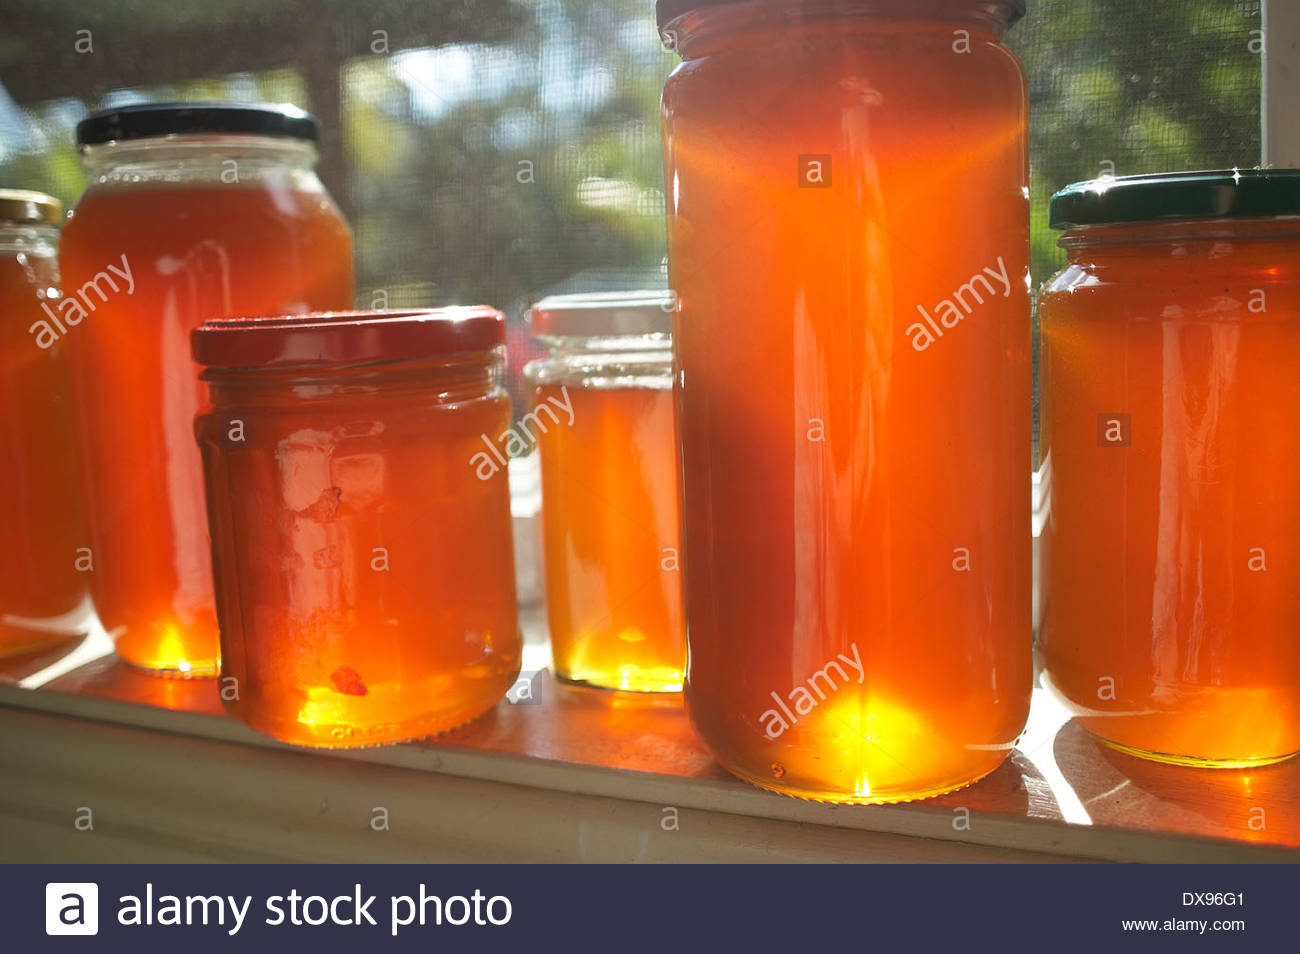 Jars of raw - home produced - unfiltered honey, glowing in the morning sunshine, on a windowsill of a farmhouse; with blurred trees in the background. - Stock Image